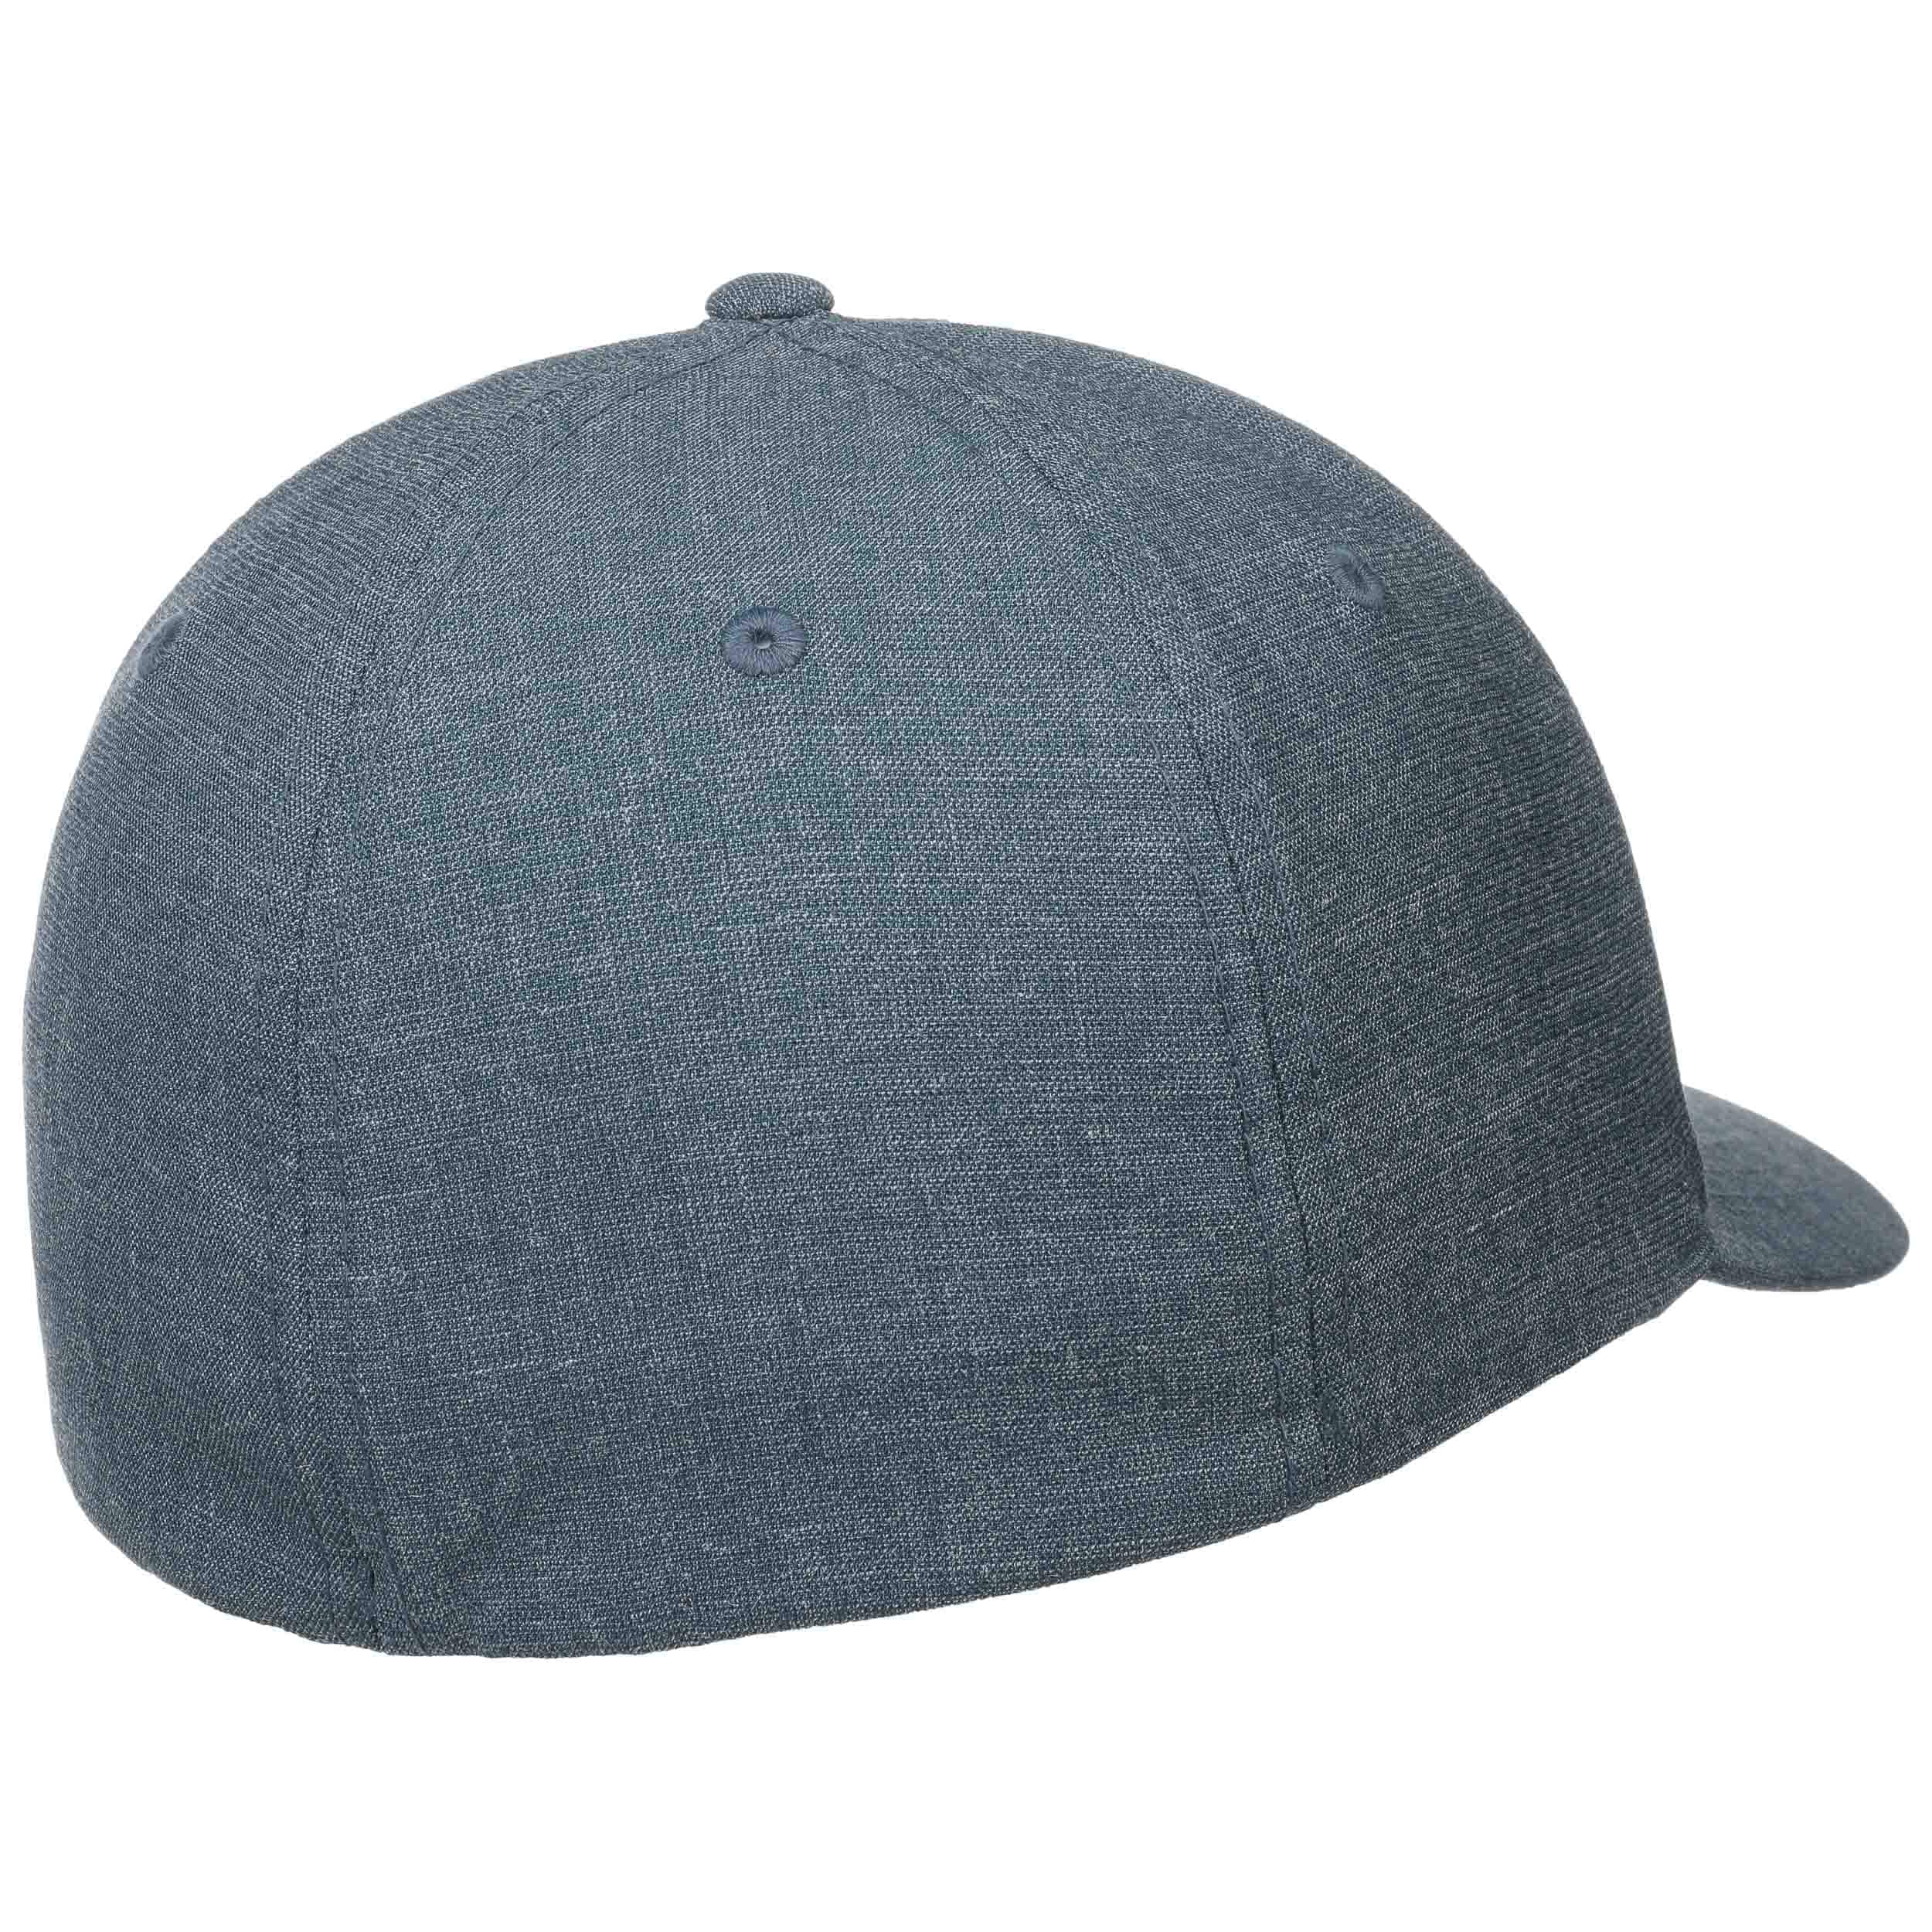 buy online 3212d 82bcf ... Clouded Flexfit Cap by FOX - blue-mottled 3 ...